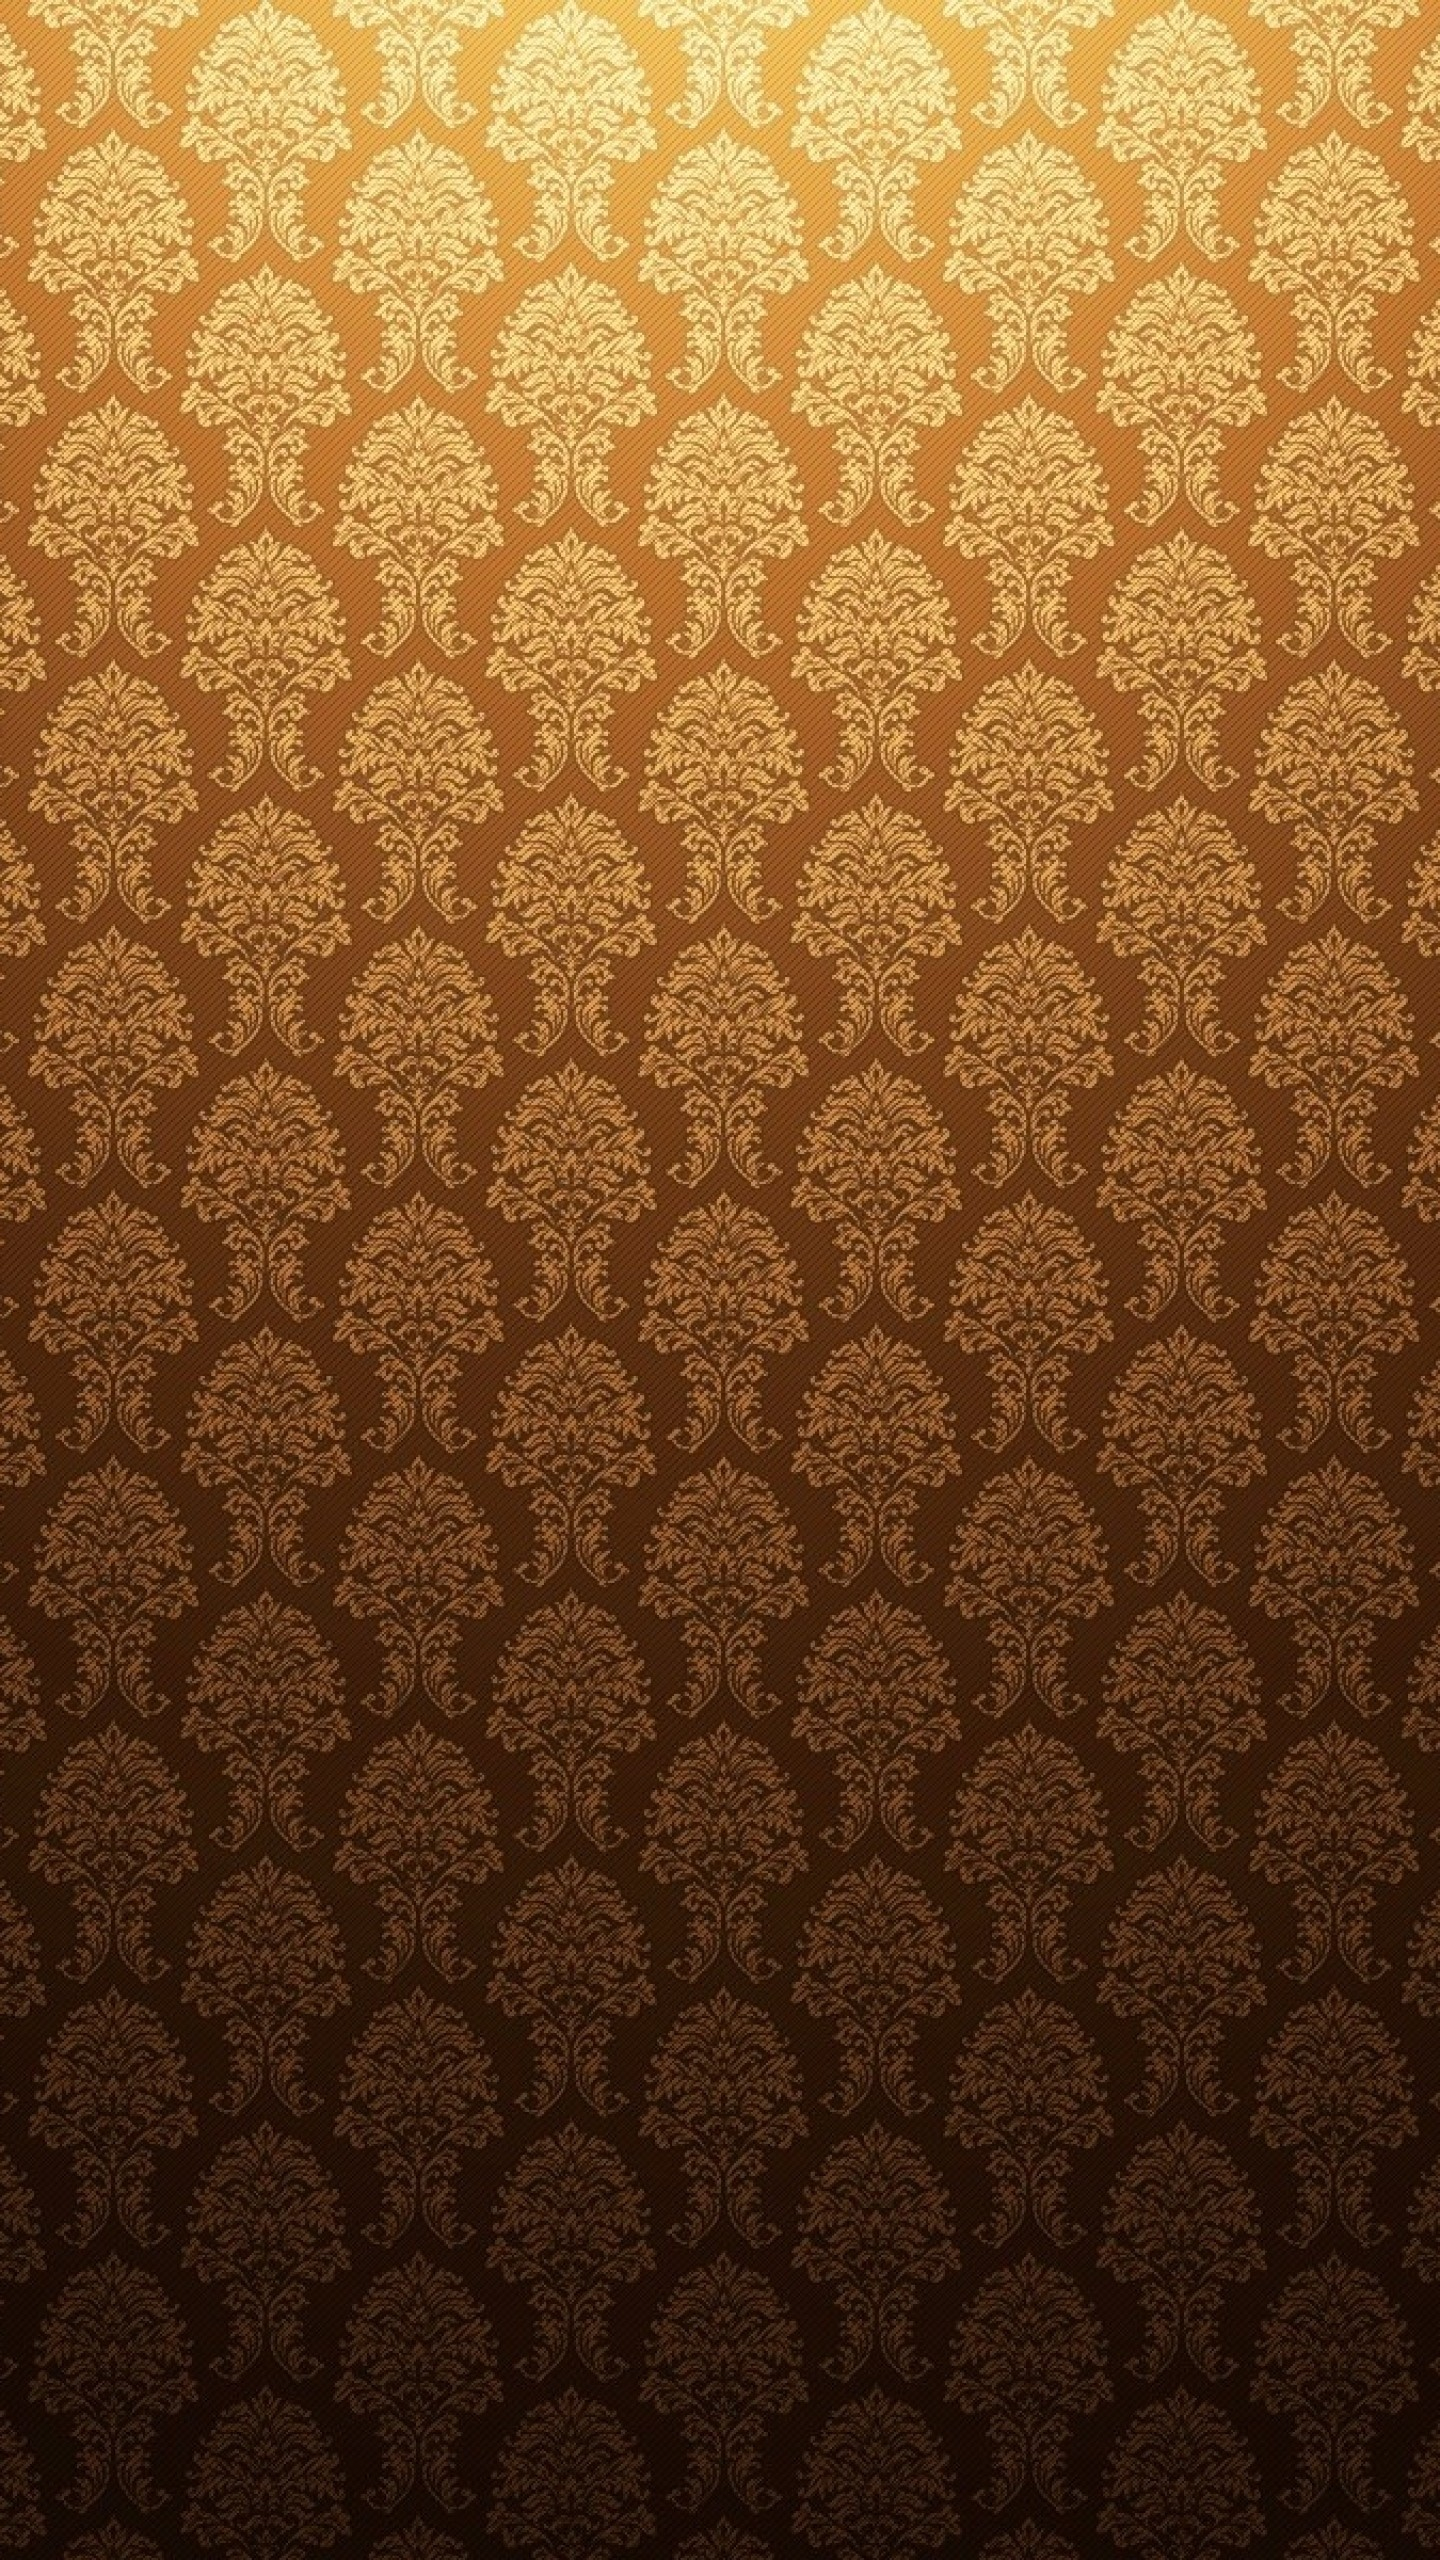 Preview wallpaper gold, antique, background, patterns 1440×2560